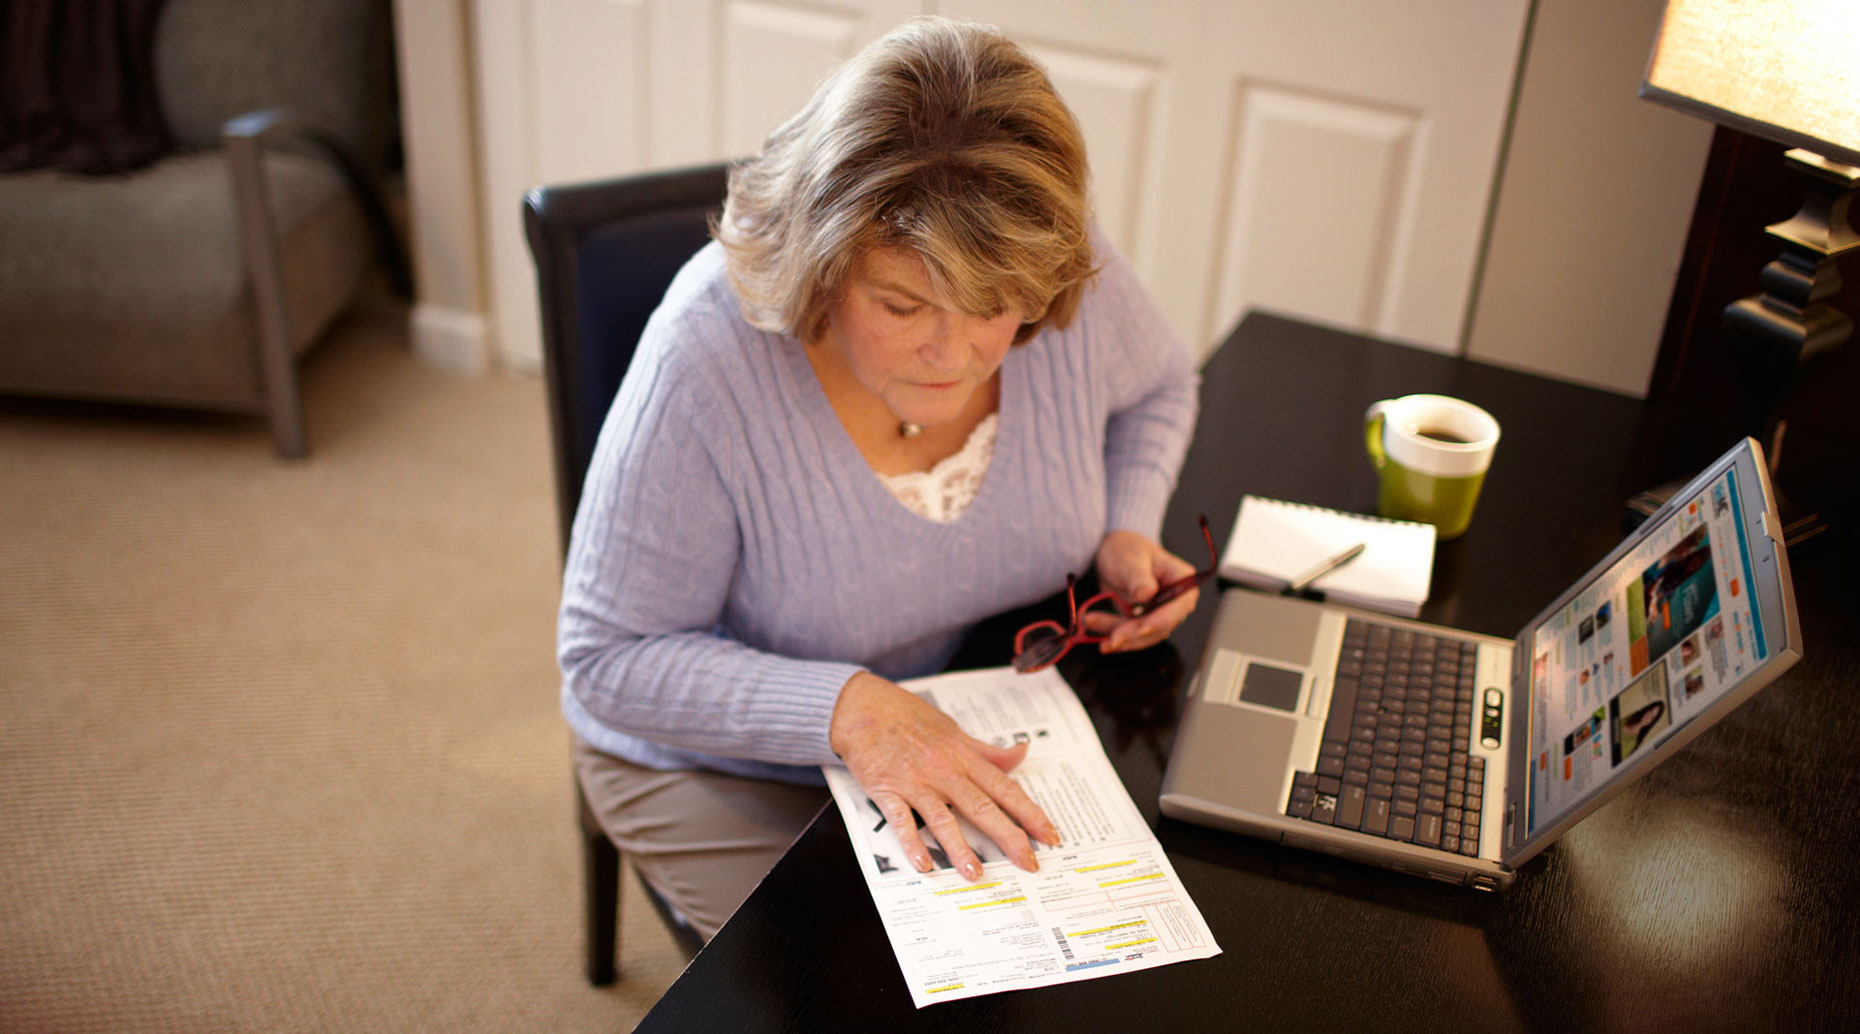 Elderly patient viewing her prescription information.